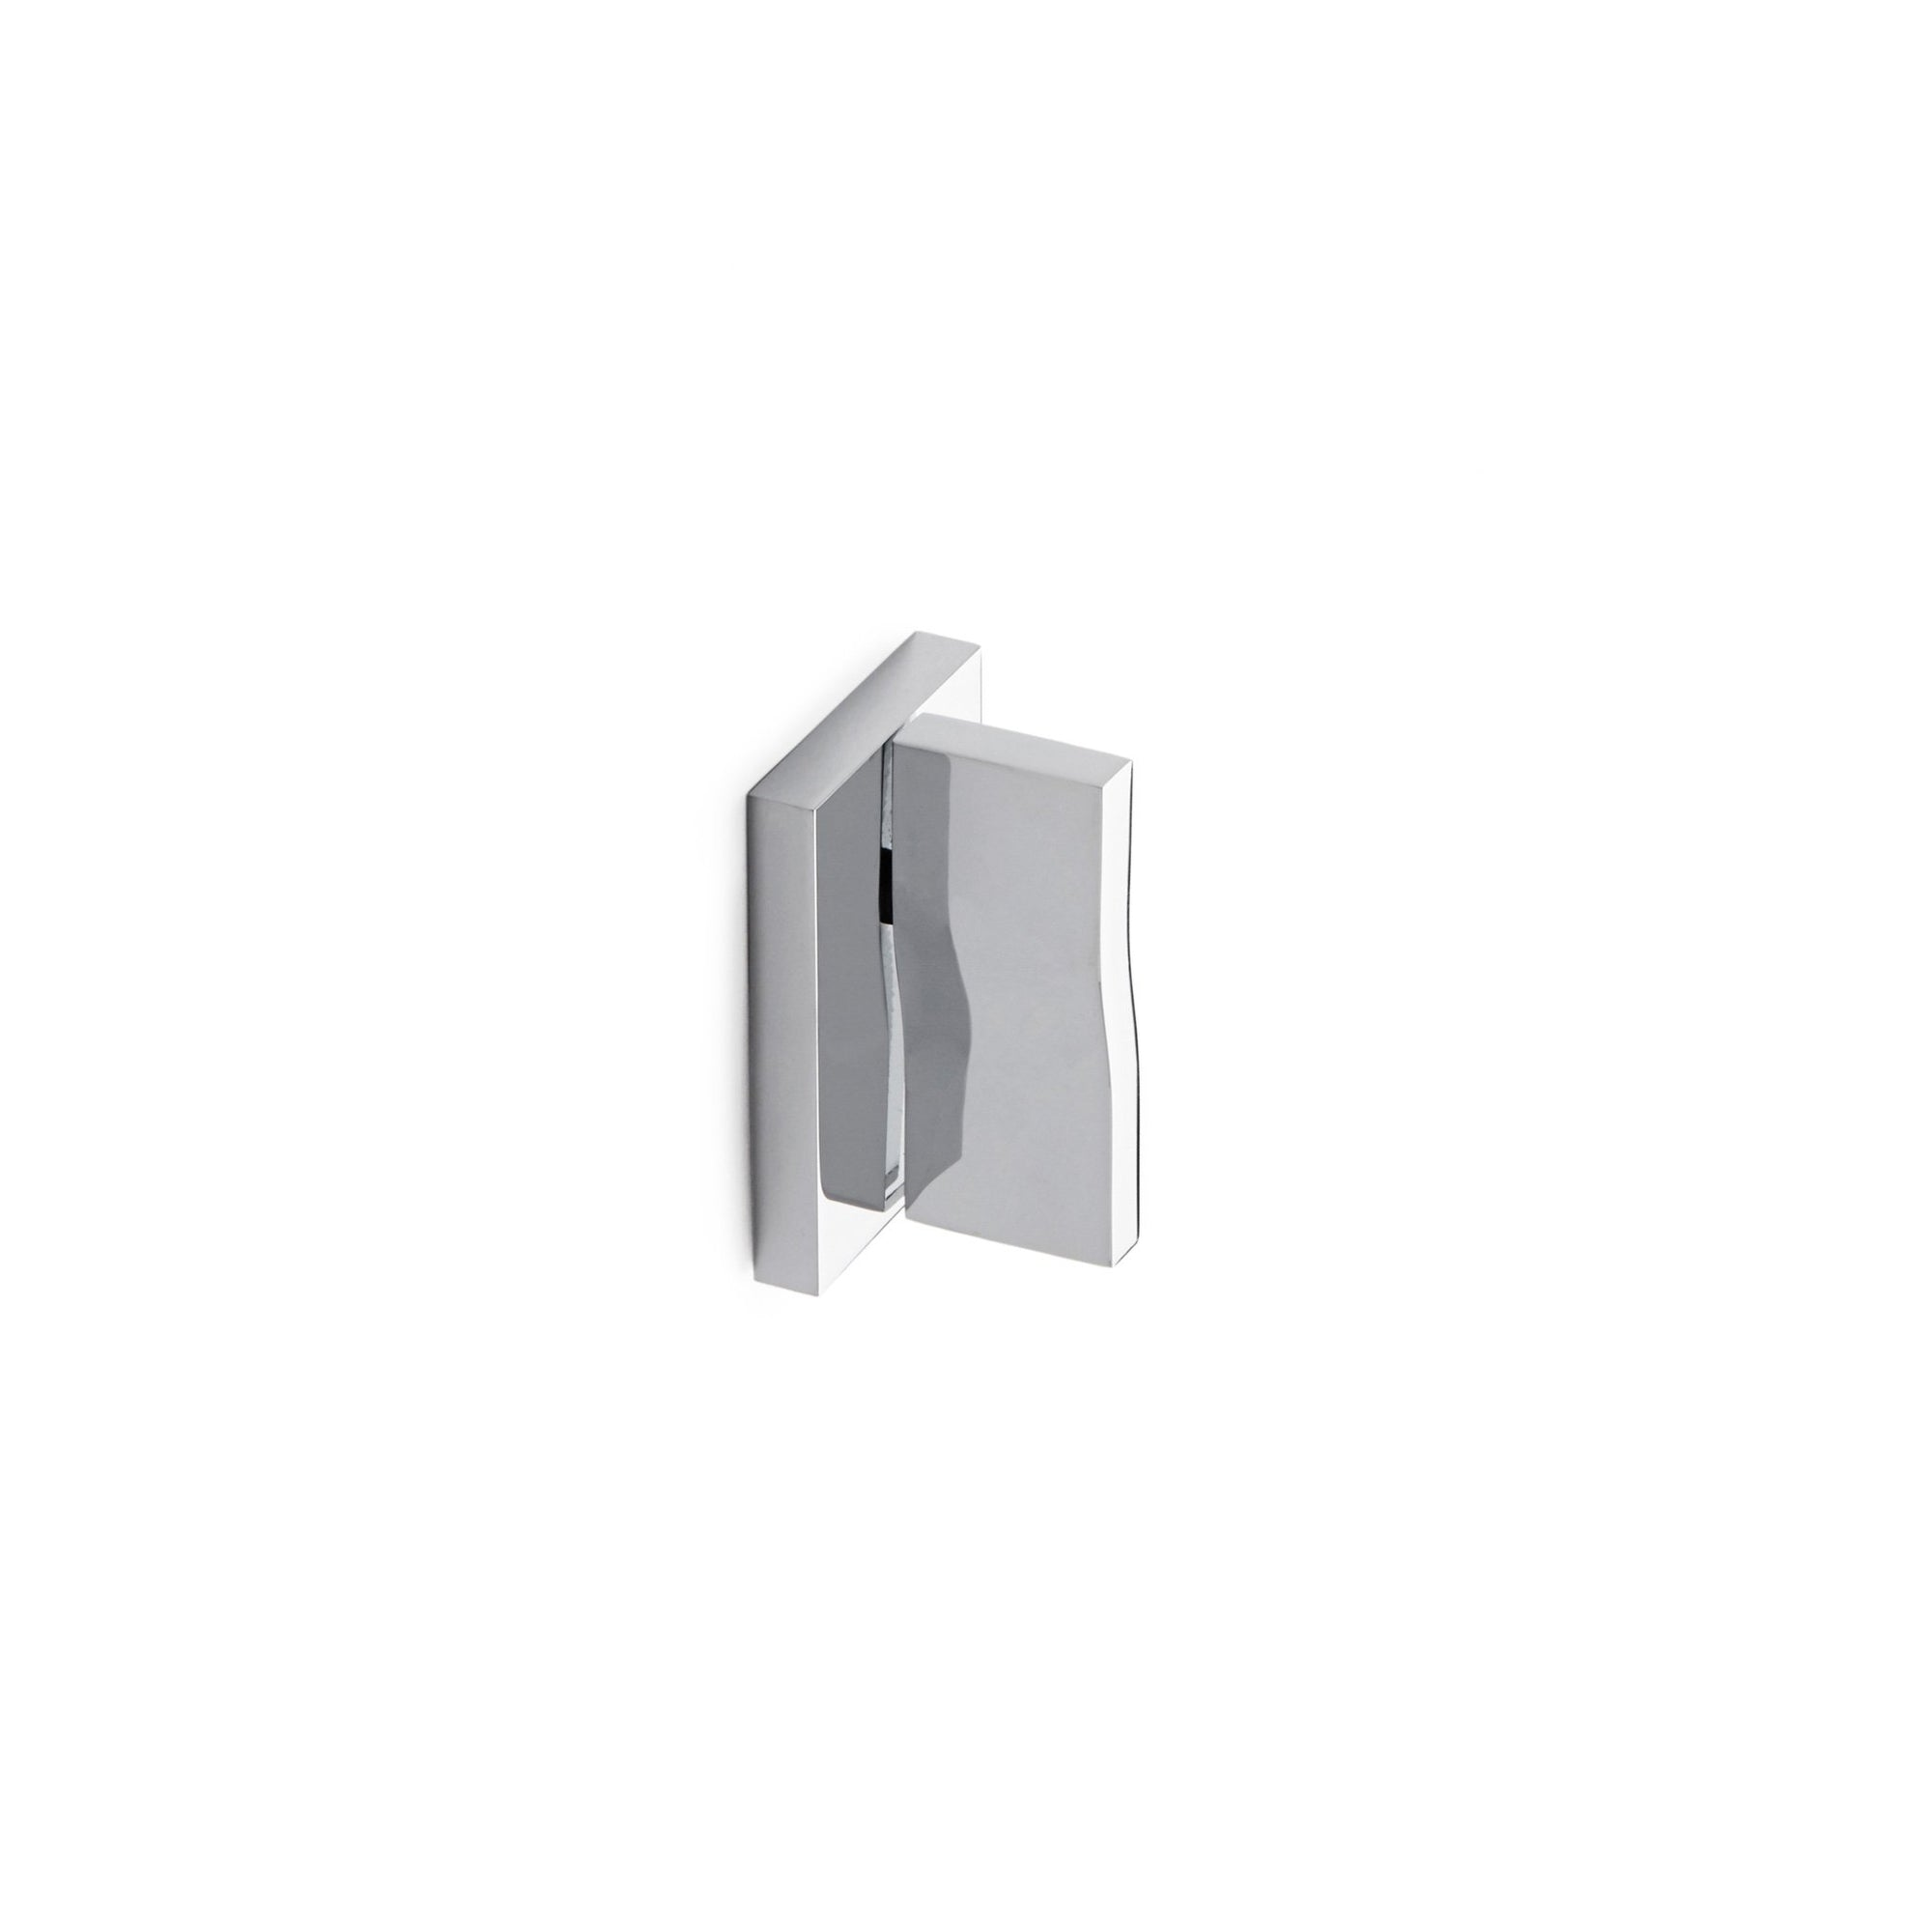 002LV-ESC-CP Sherle Wagner International Ripple Lever Volume Control and Diverter Trim in Polished Chrome metal finish